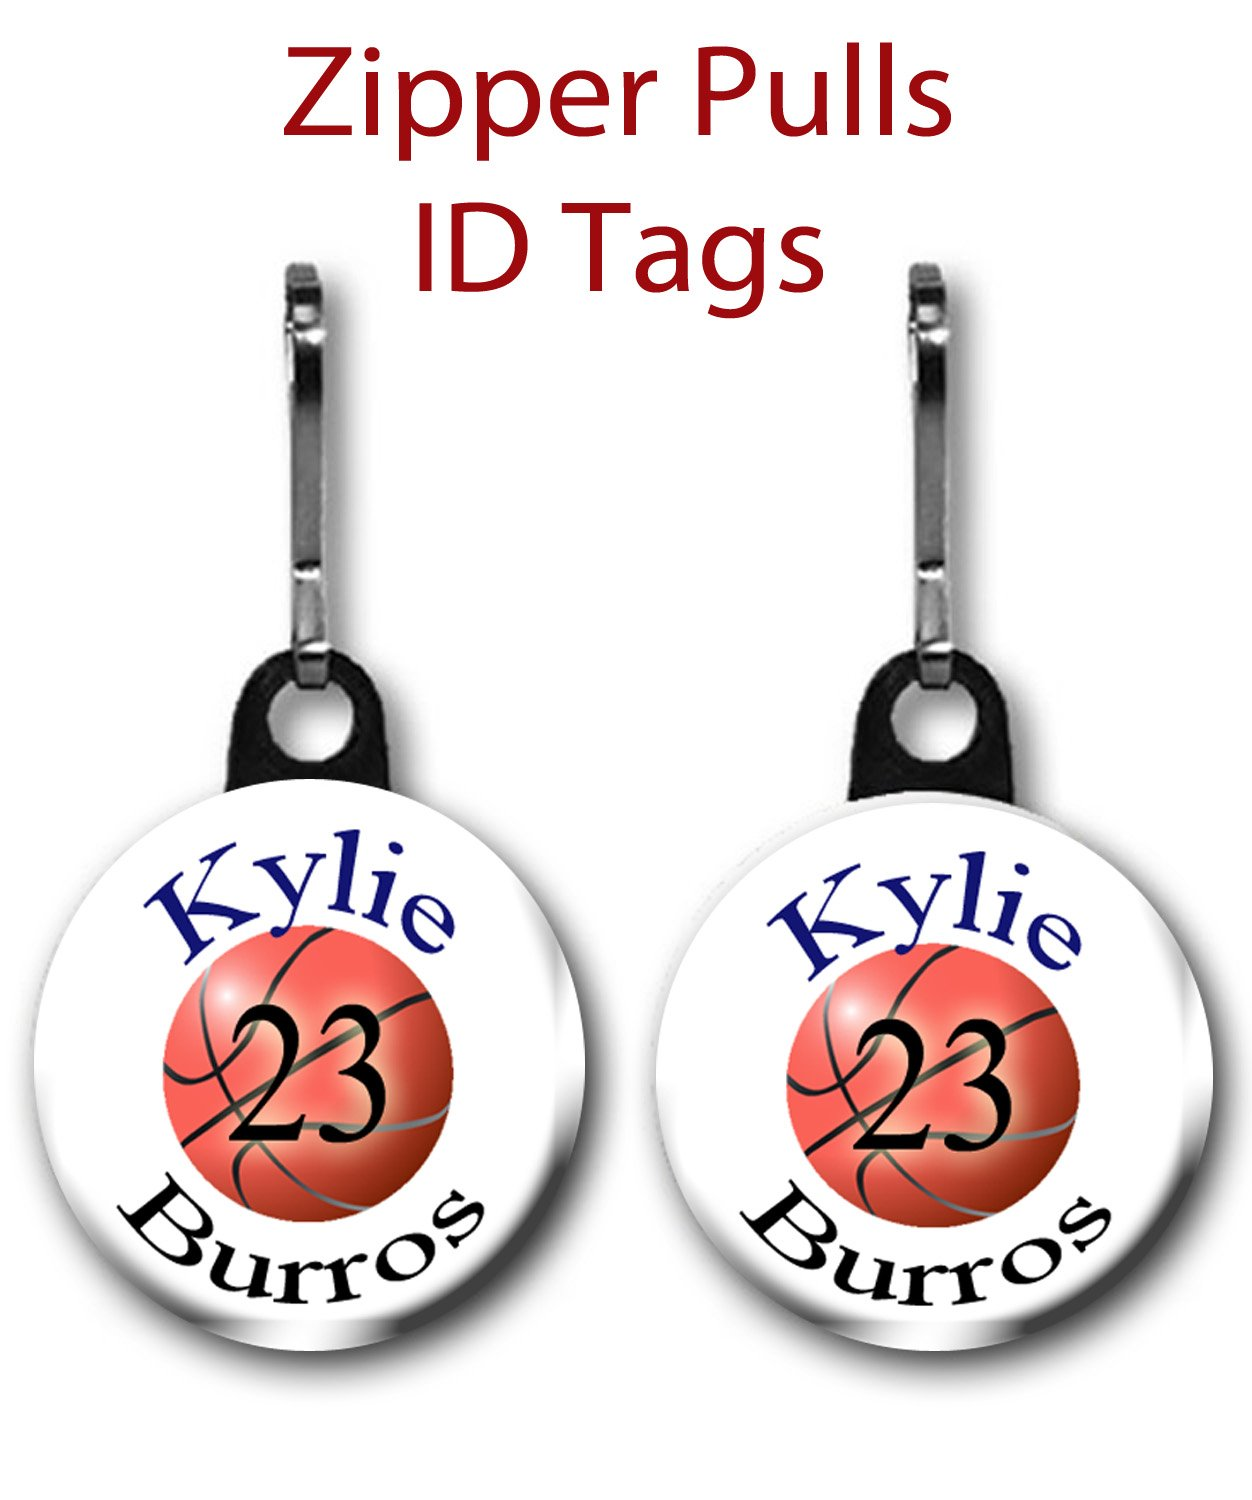 Amazon Com Personalized Basketball Zipper Pulls Bag Tags 2 Pack 1